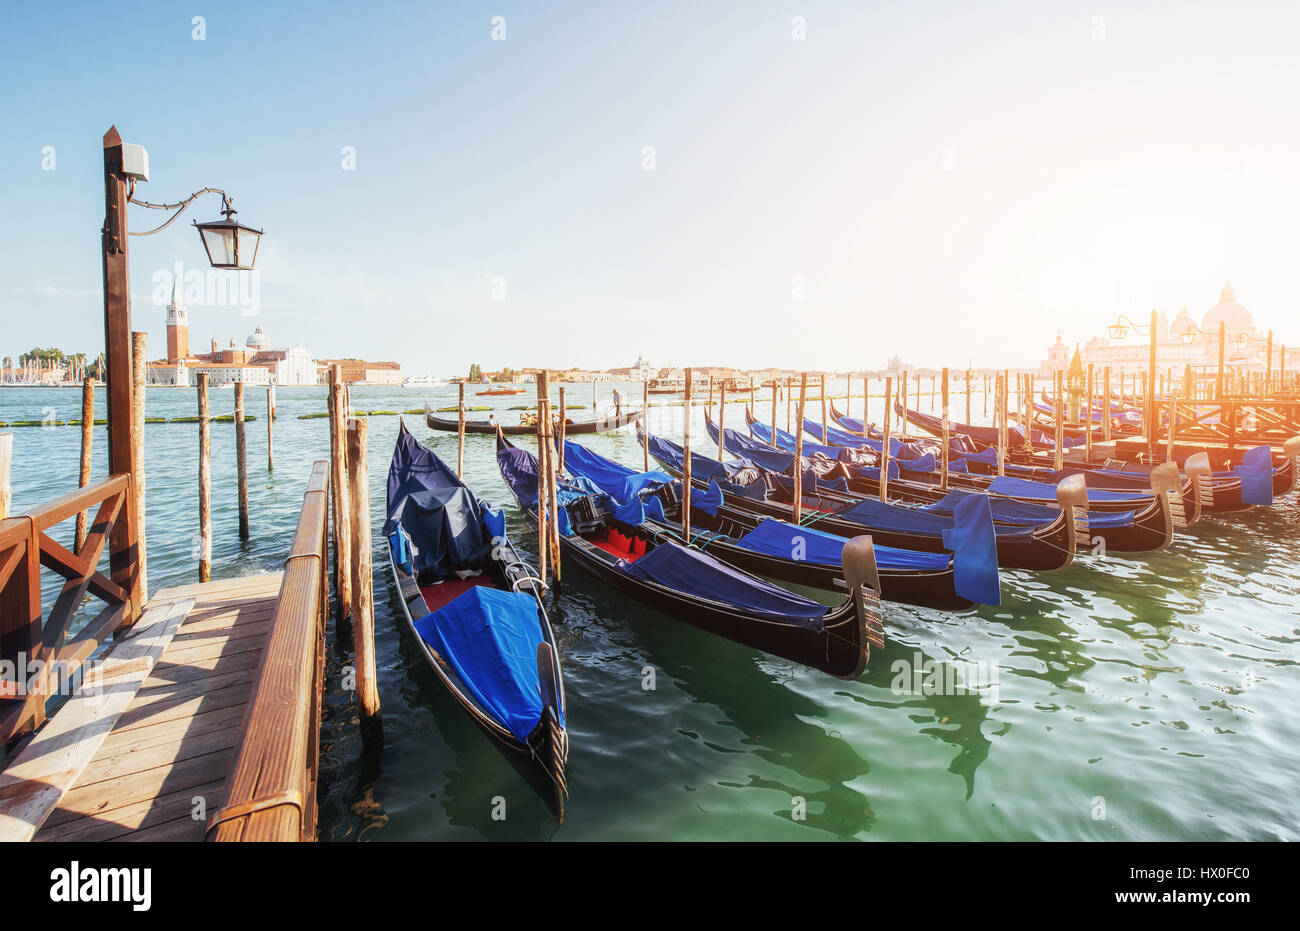 Gondolas on Grand canal in Venice, San Giorgio Maggiore church. San Marco. Beautiful summer landscape Stock Photo